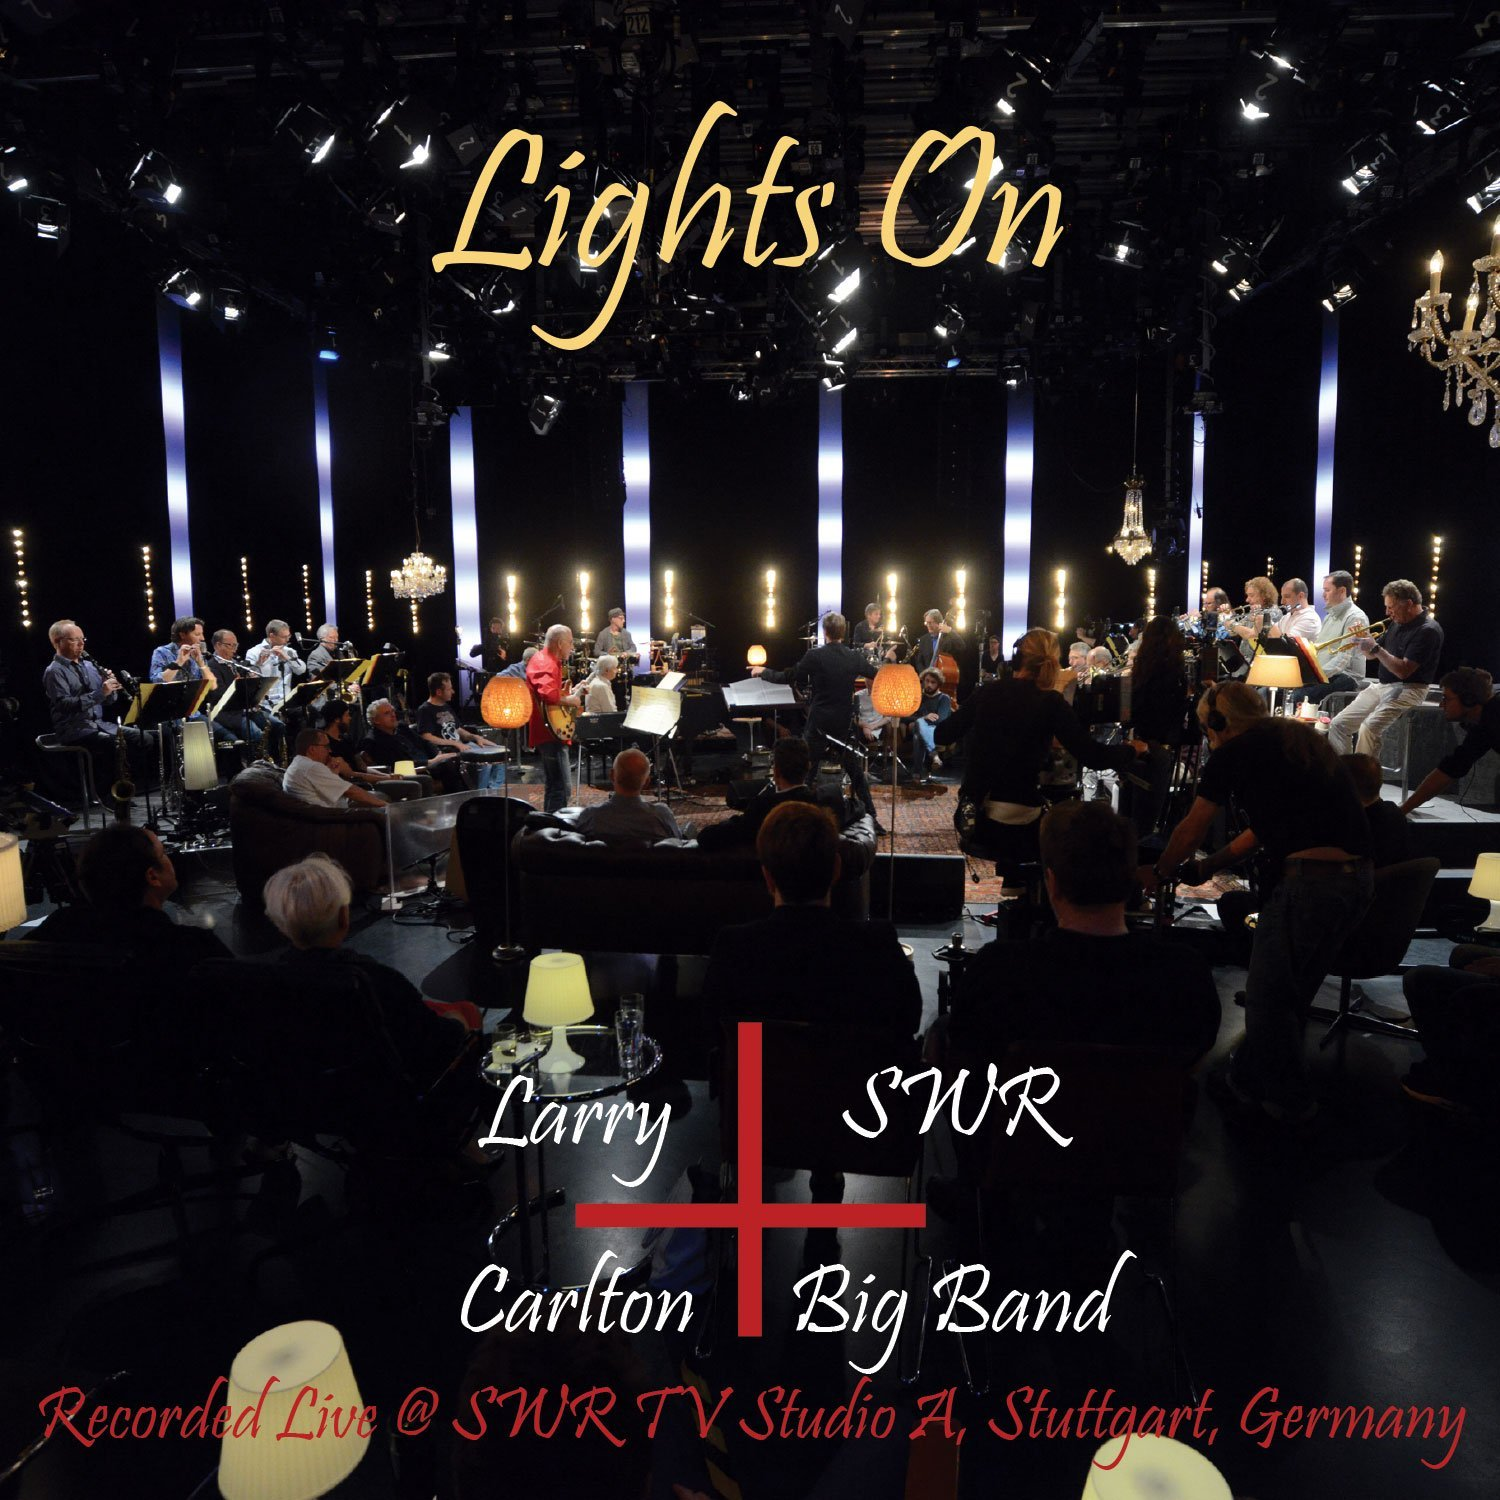 Küche Rational Solo Republic Of Jazz Larry Carlton And The Swr Big Band Lights On